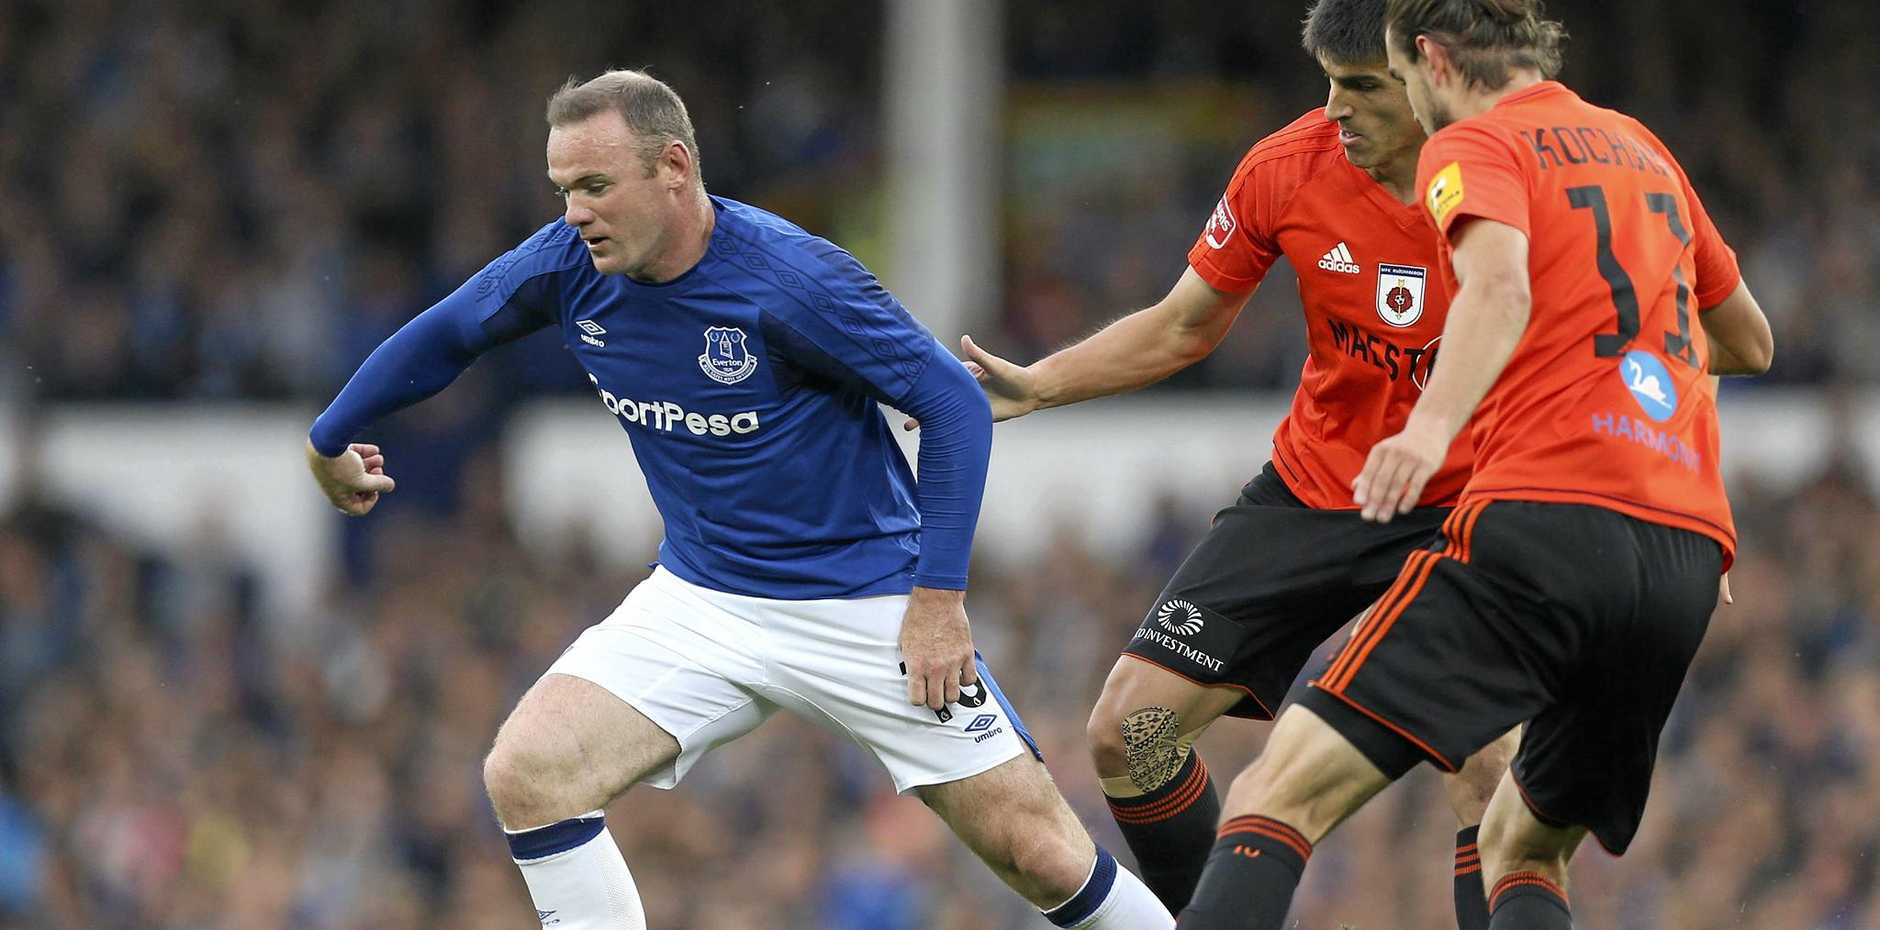 BACK HOME: Wayne Rooney has returned to Everton for this Premier League season.